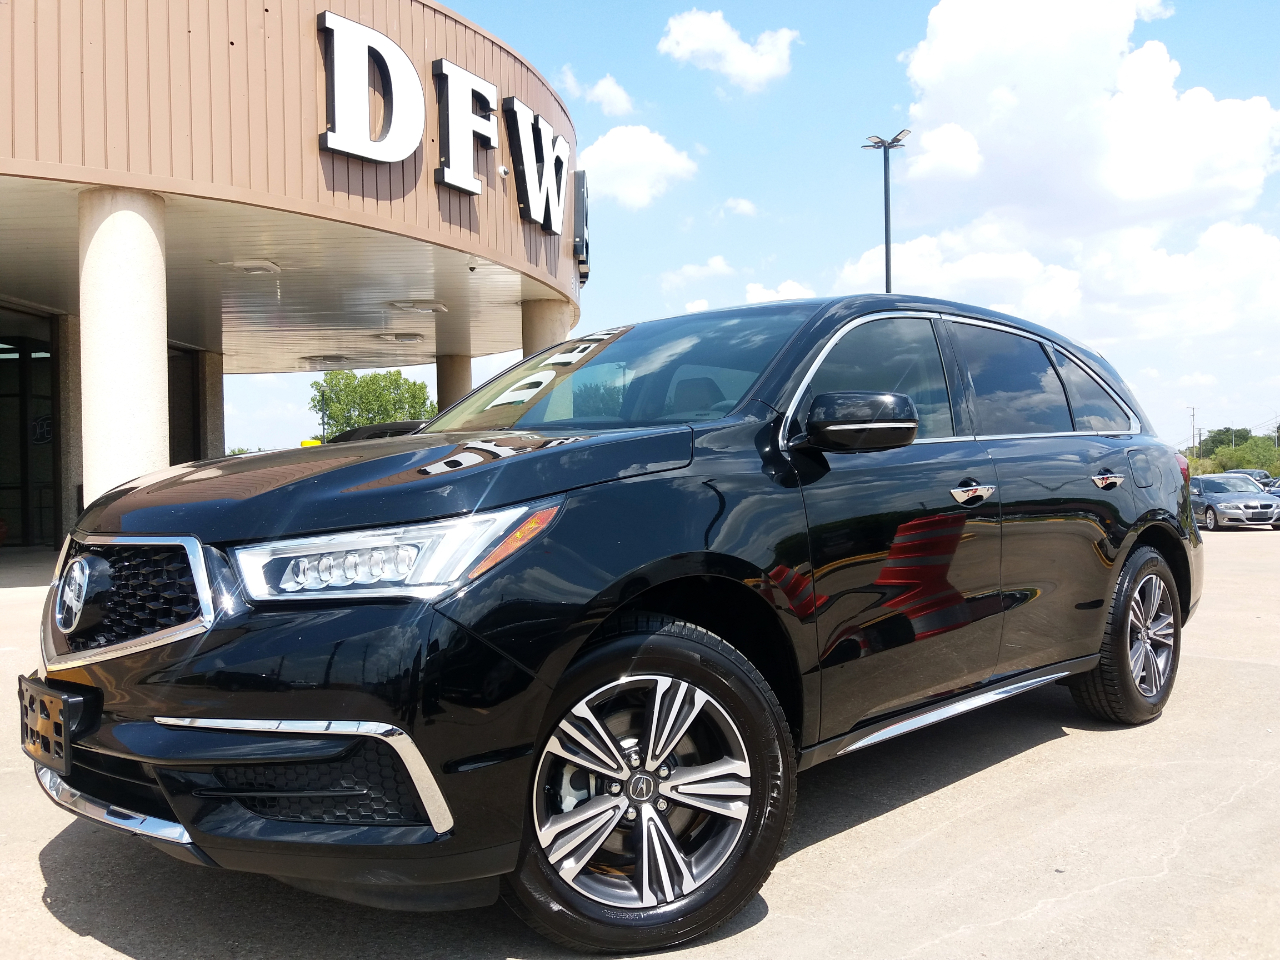 2017 Acura MDX 9-Spd AT